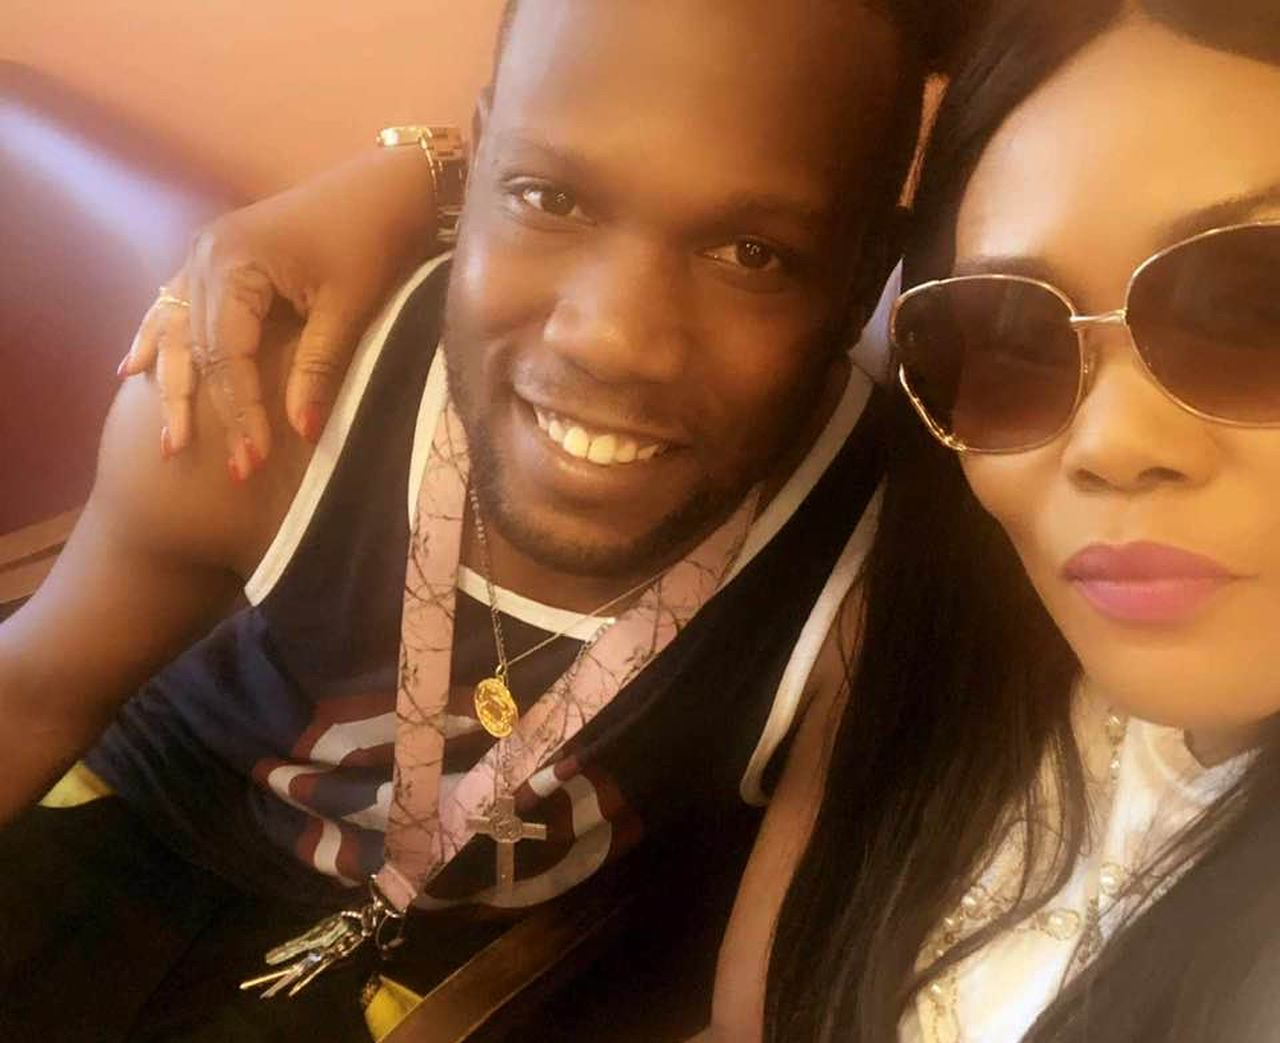 Maurice Gordon, 28, of Poughkeepsie, pictured with his mother, Racquell Barrett of London, was killed by a state trooper on the Garden State Parkway May 23, 2020.Provided